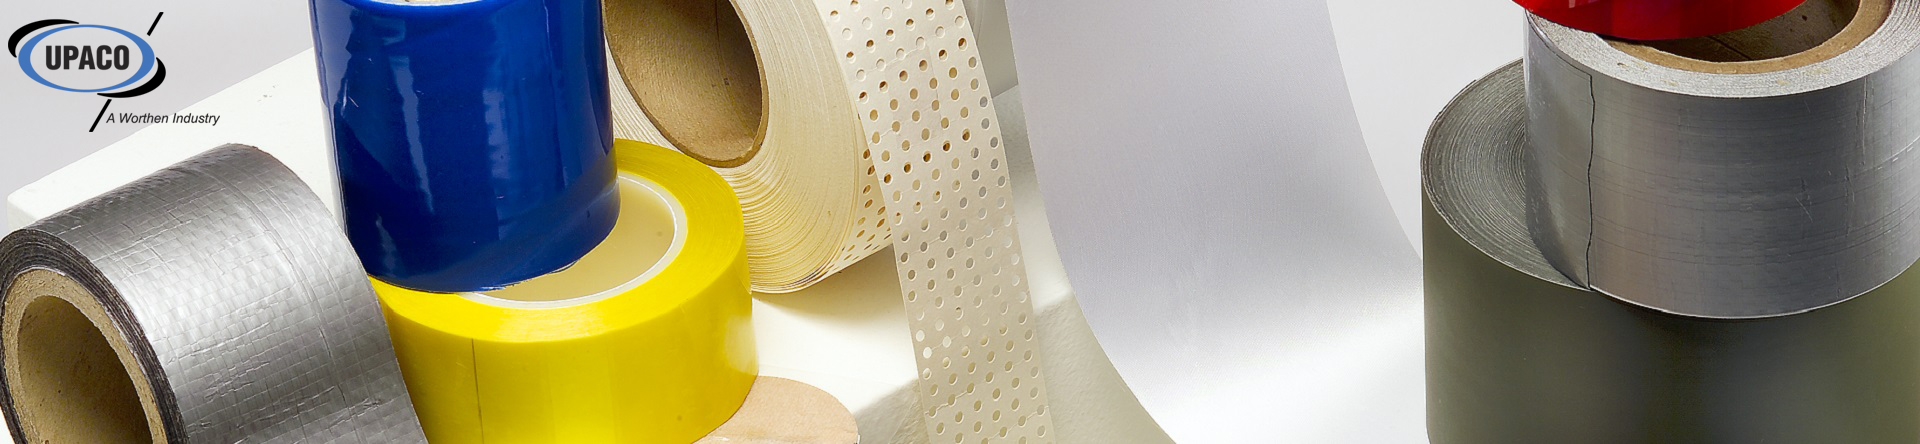 Adhesive Coated Products: Products